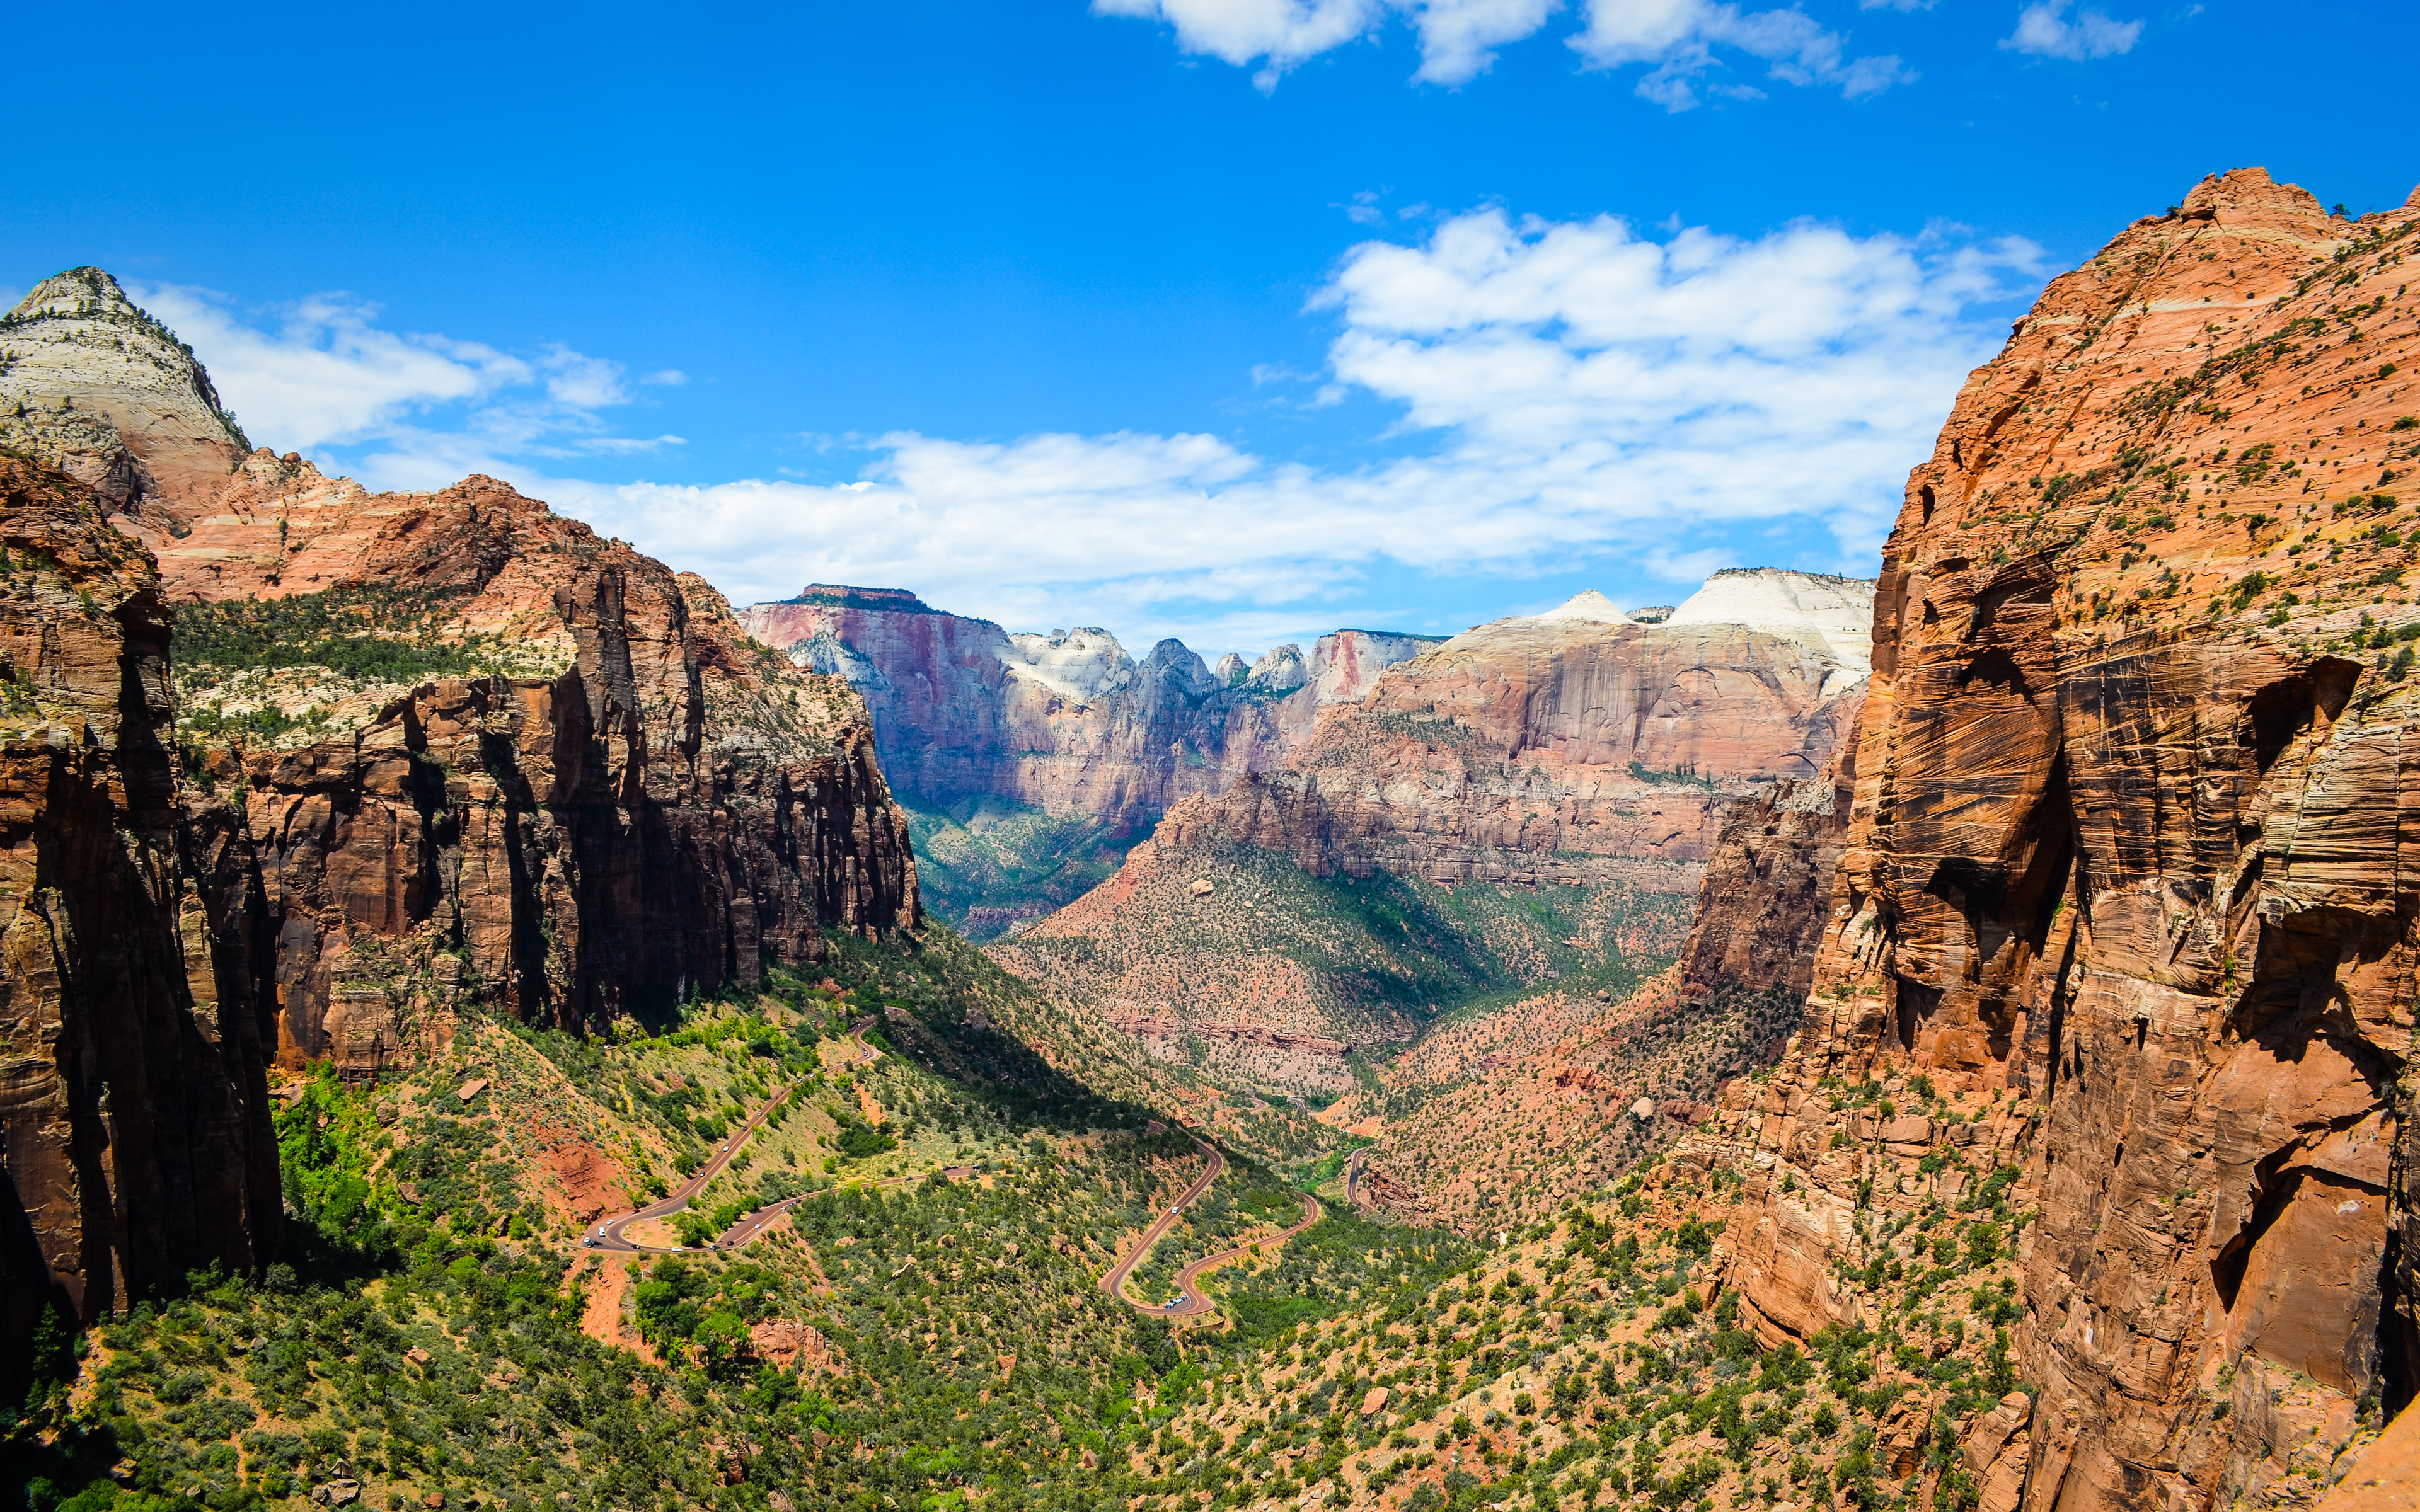 Heavens Of Zion Wallpaper Photographs By Terry Majamaki